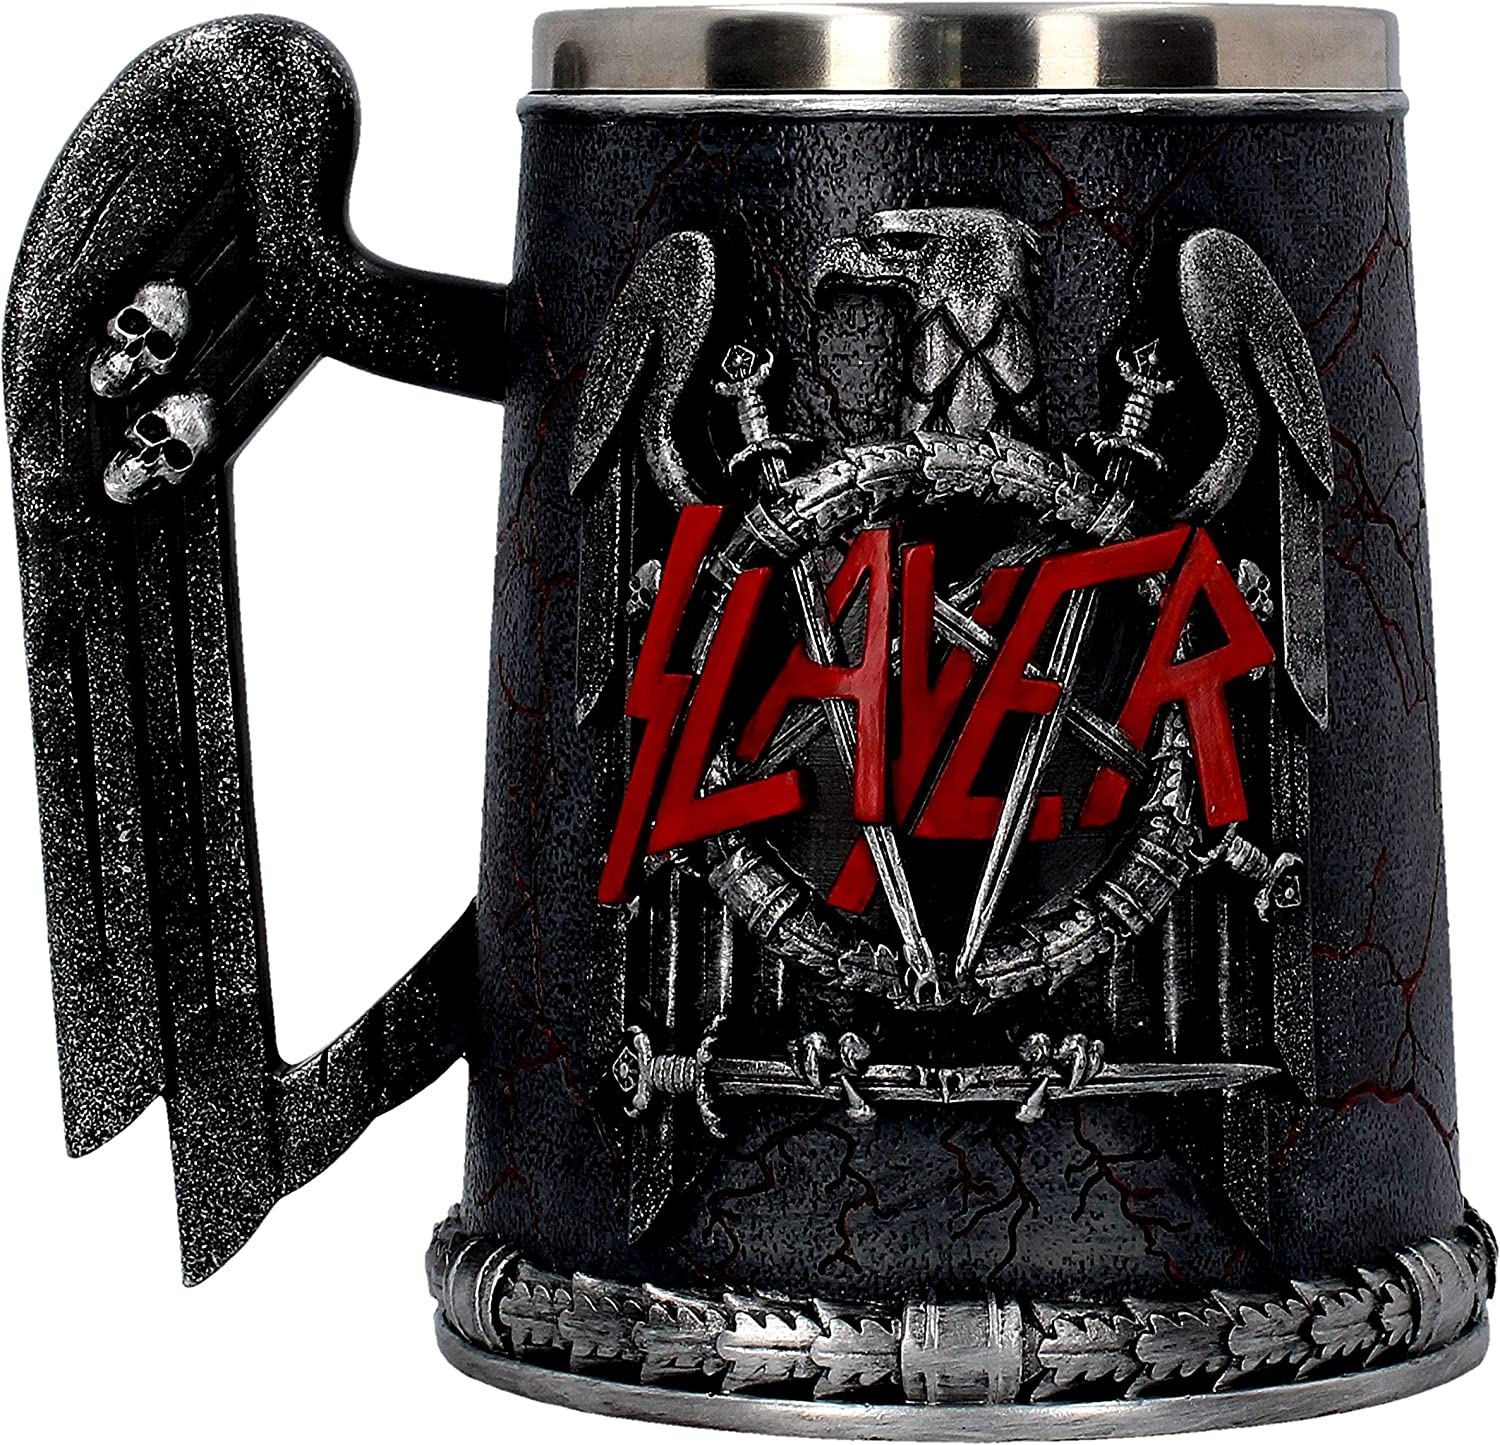 Judas Priest British Steel Design Mug Boxed Gift Official Product